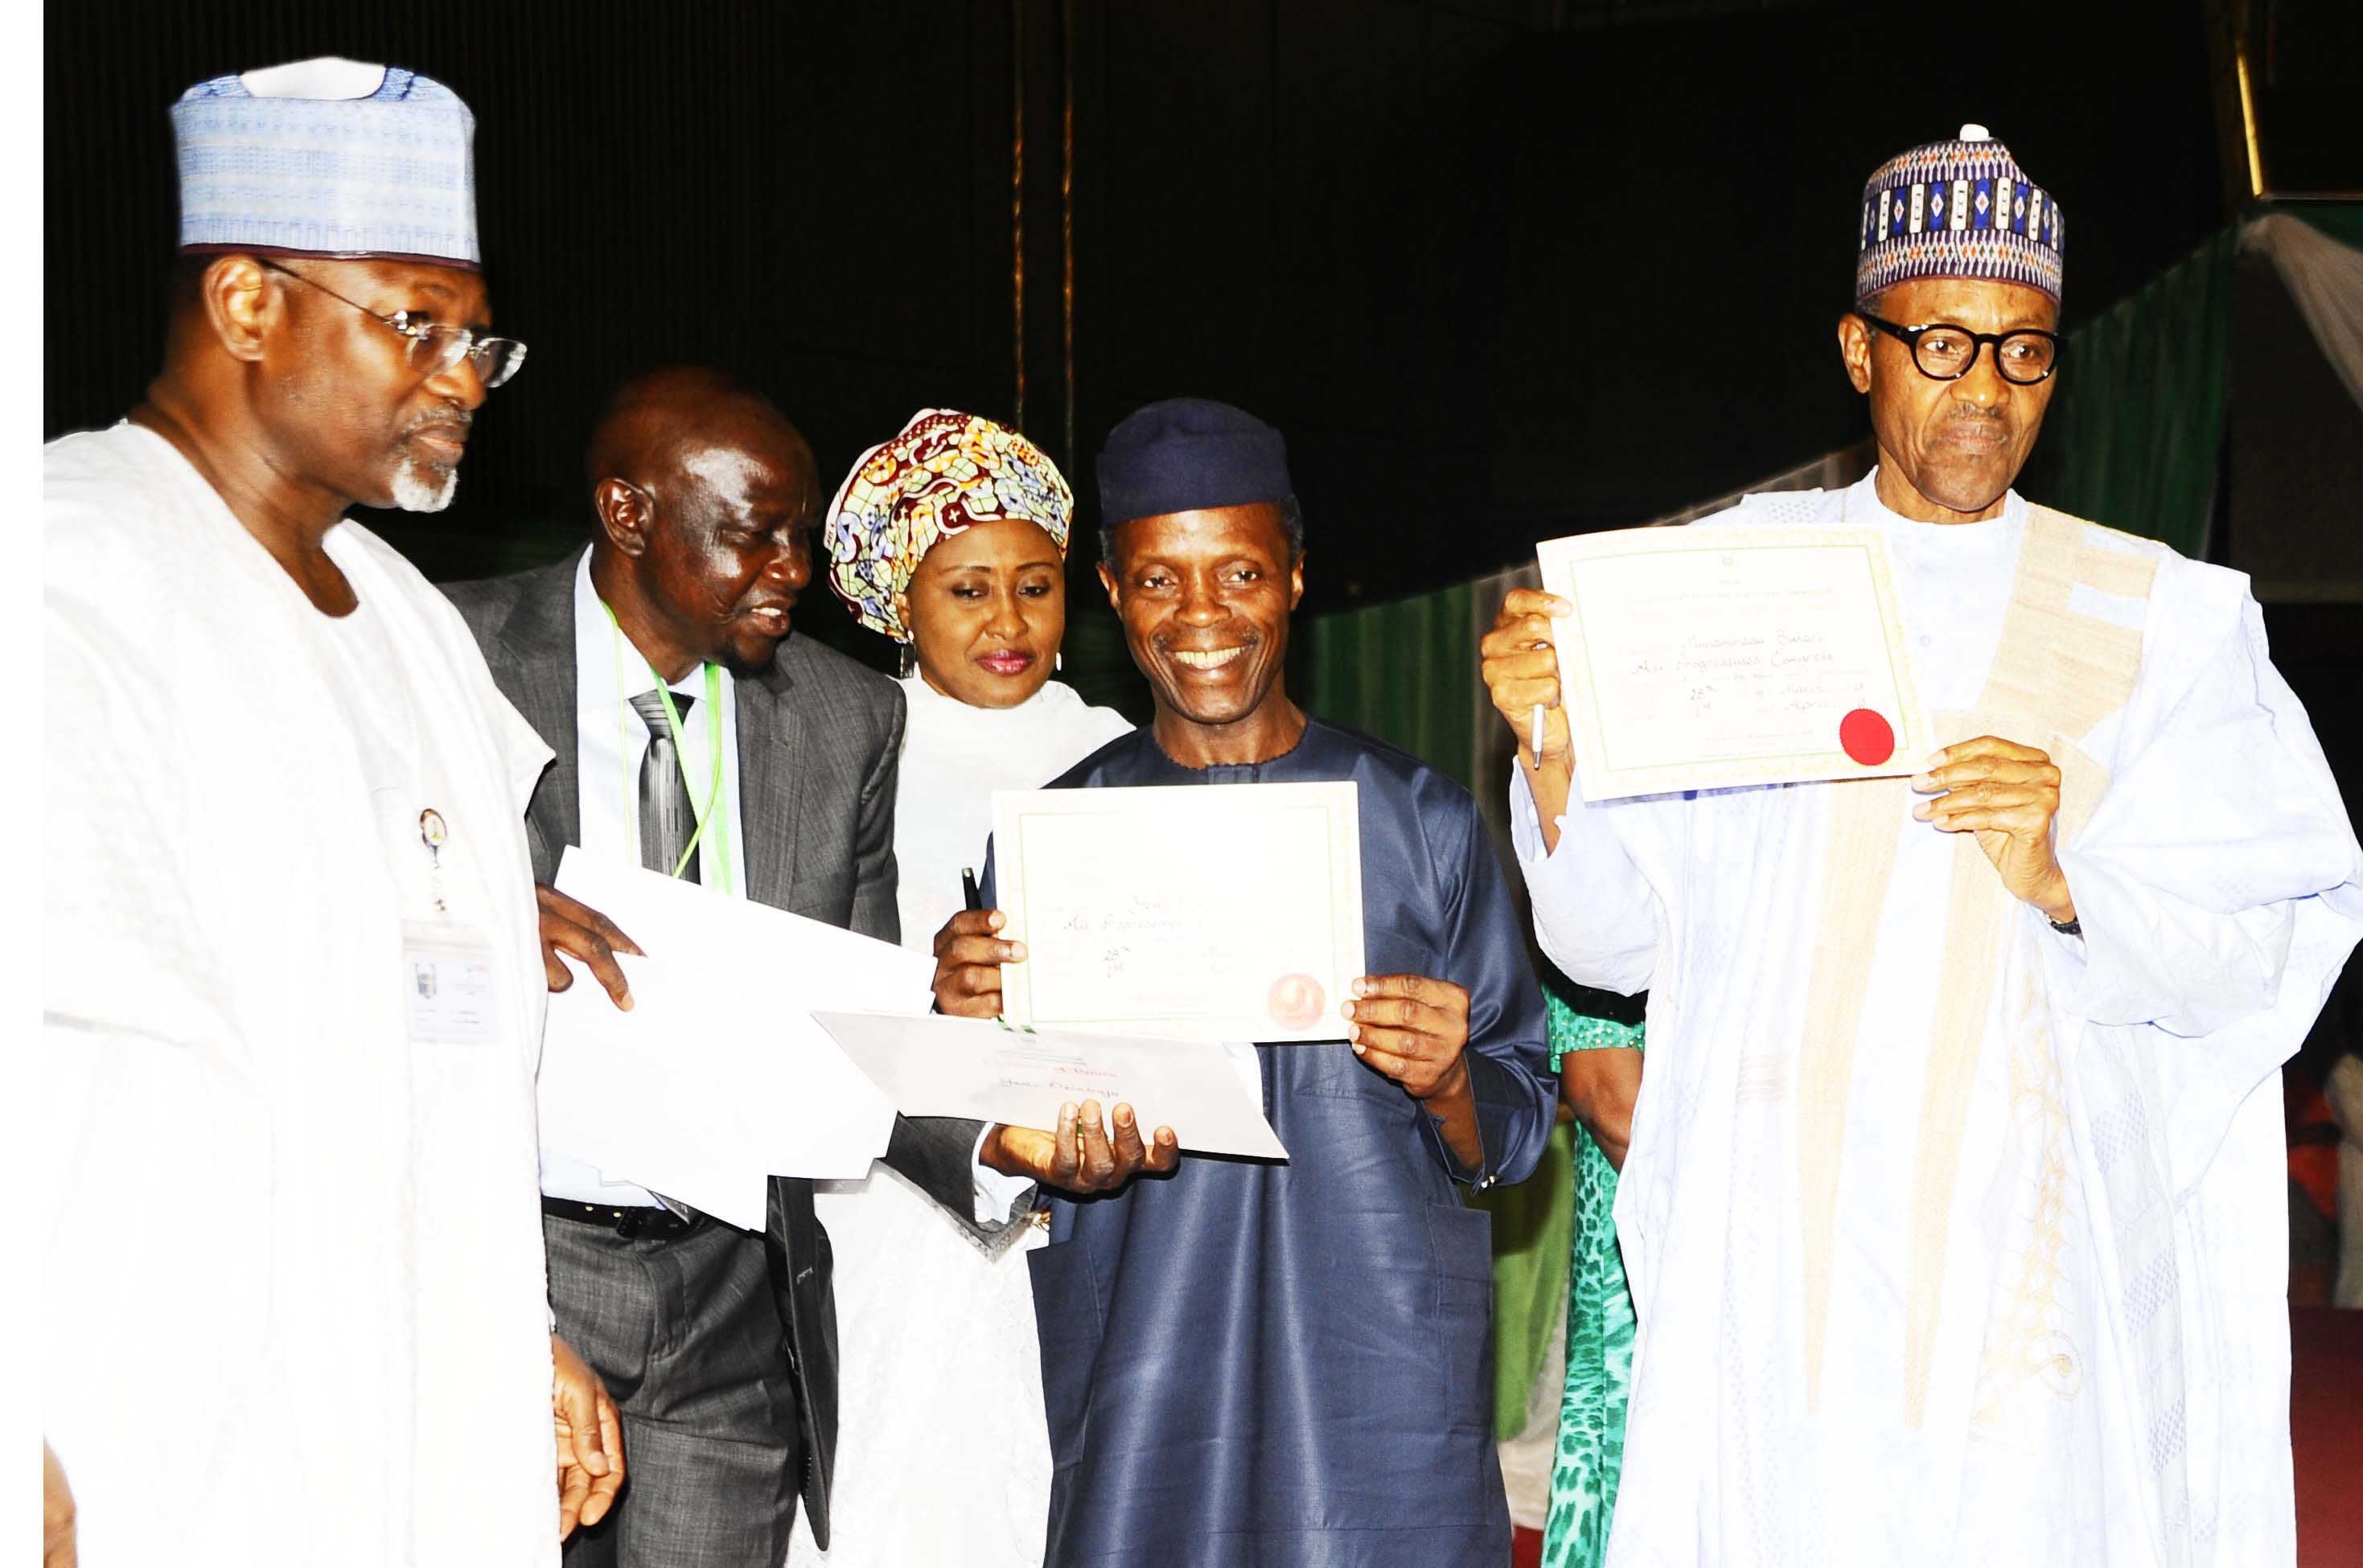 President-Elect, General Muhammadu Buhari (right); his Vice President-Elect, Professor Yemi Osinbajo (2nd right) displaying their Certificates of Return after receiving it from the Chairman, Independent National Electoral Commission (INEC), Professor Attahiru Jega (left) at the National Conference Centre, Abuja on Wednesday 01-04-2015